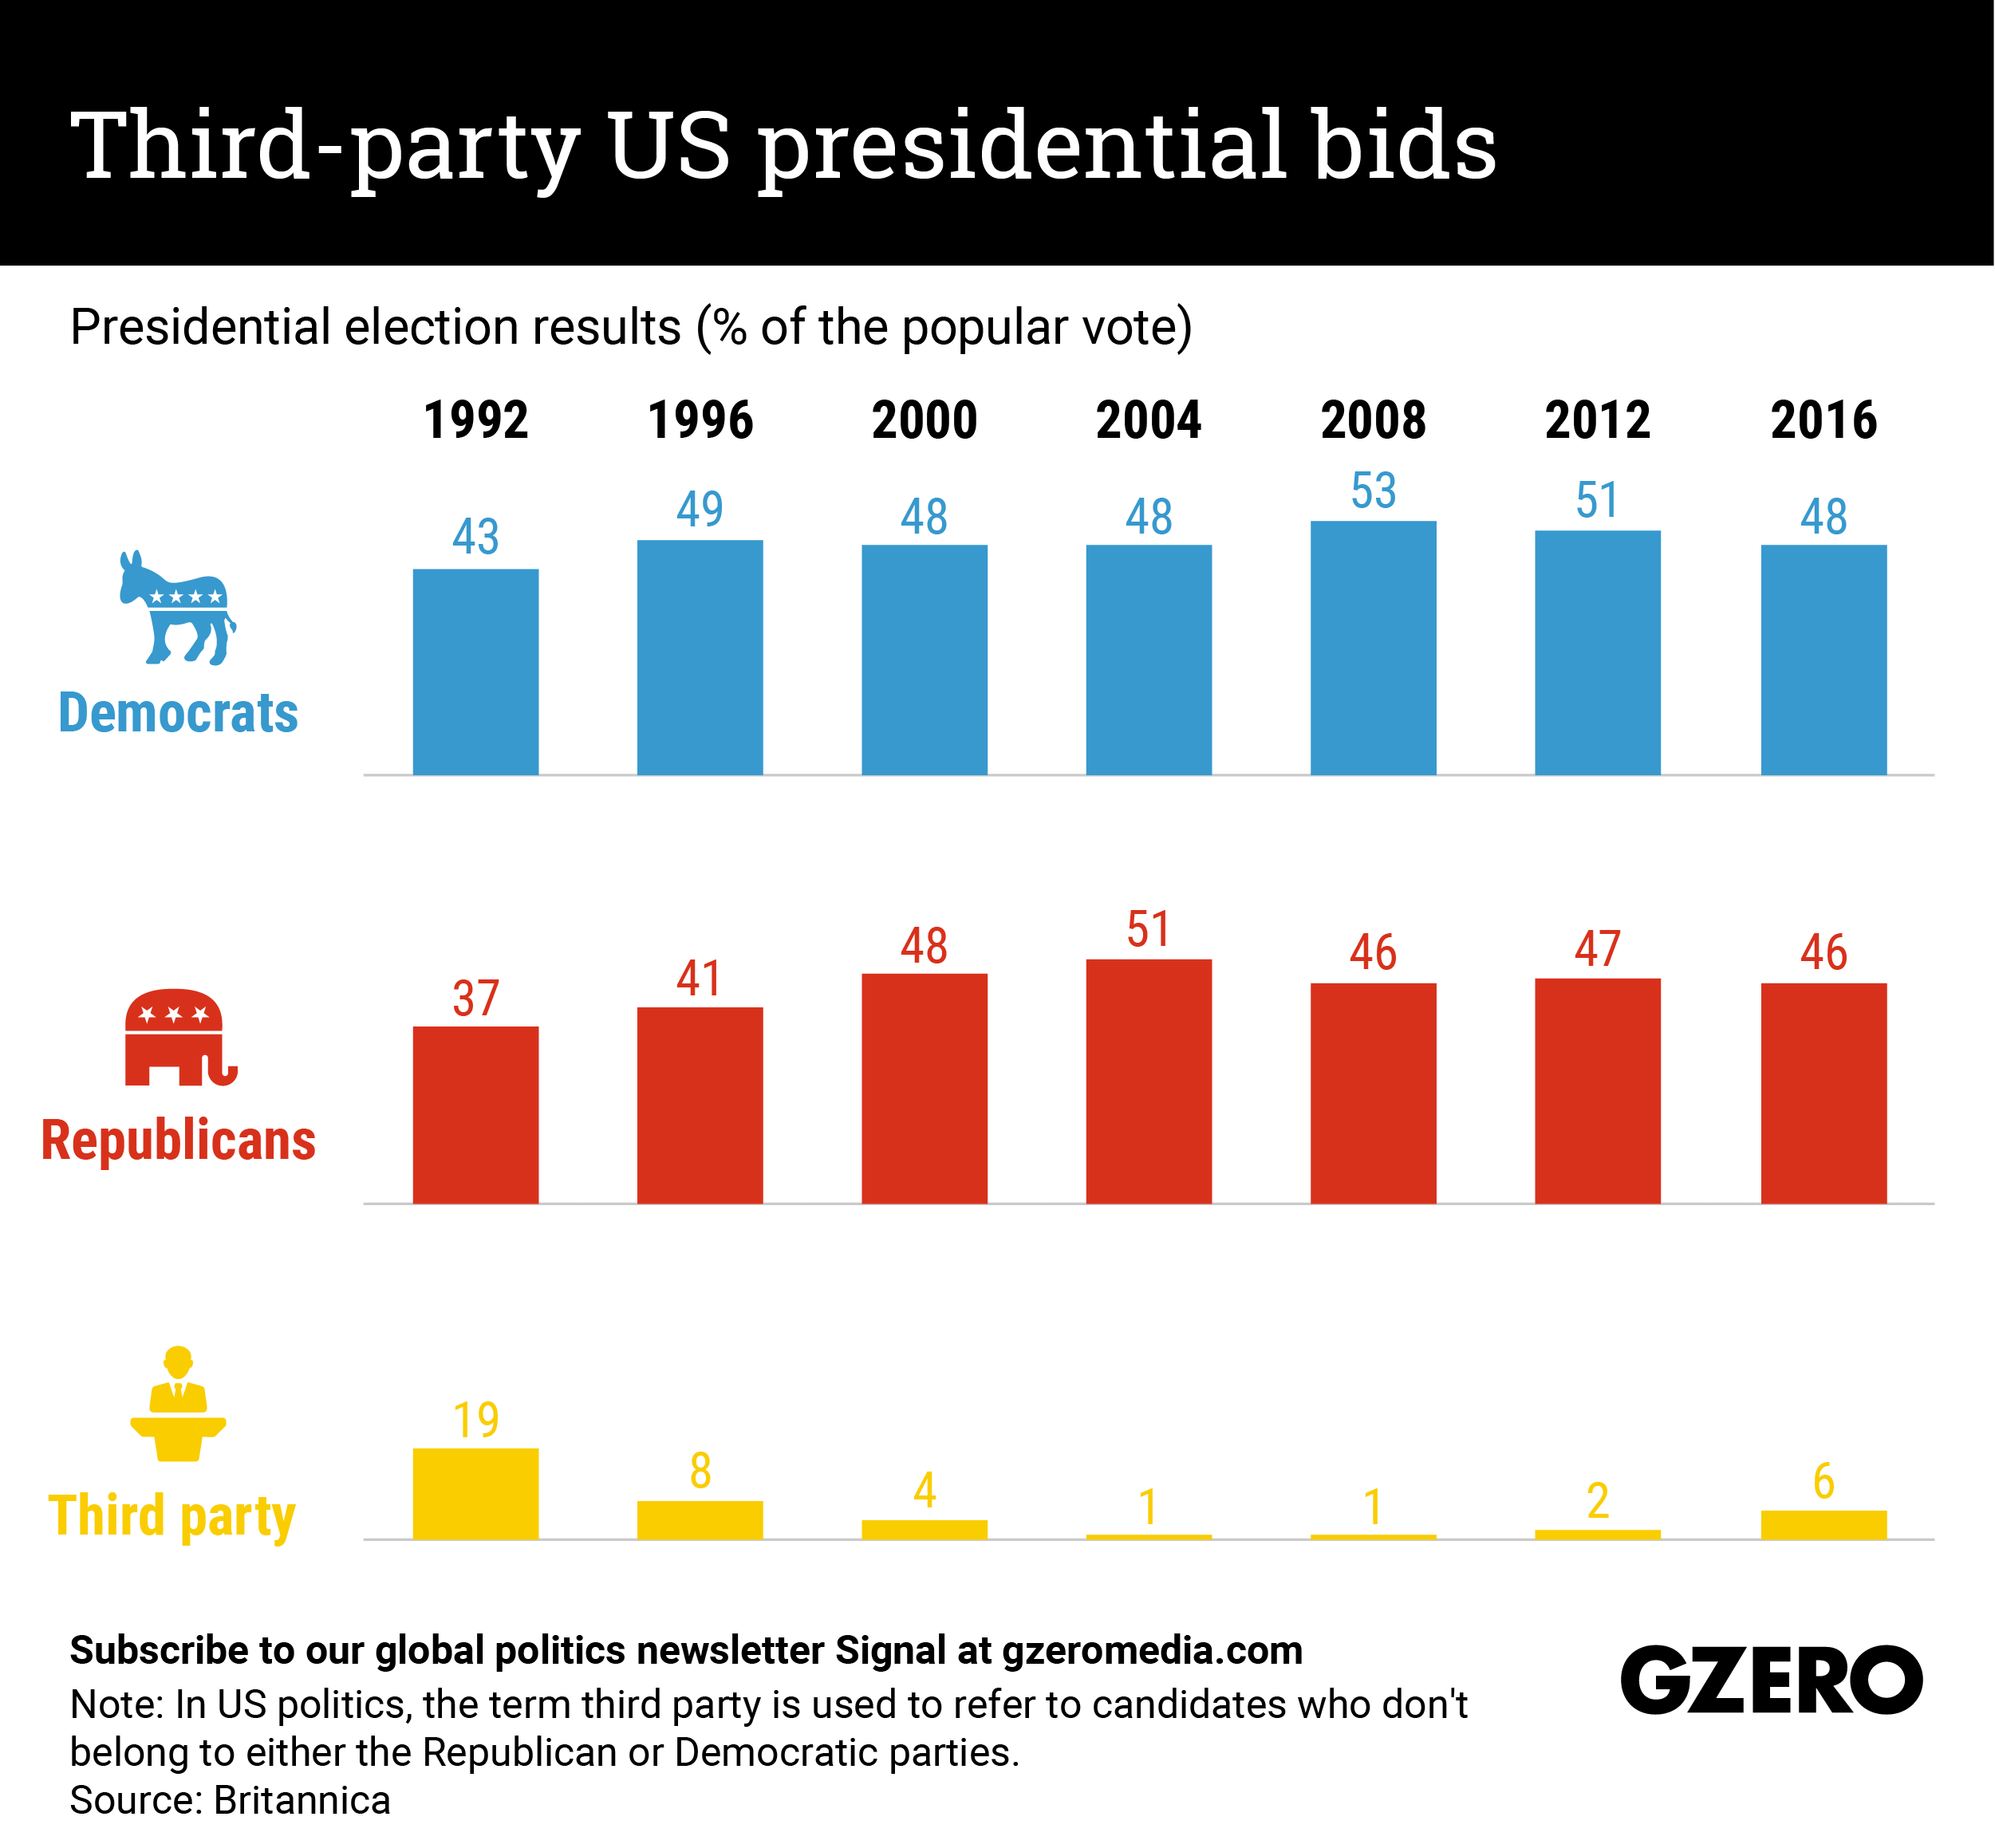 The Graphic Truth: Third-party US presidential bids